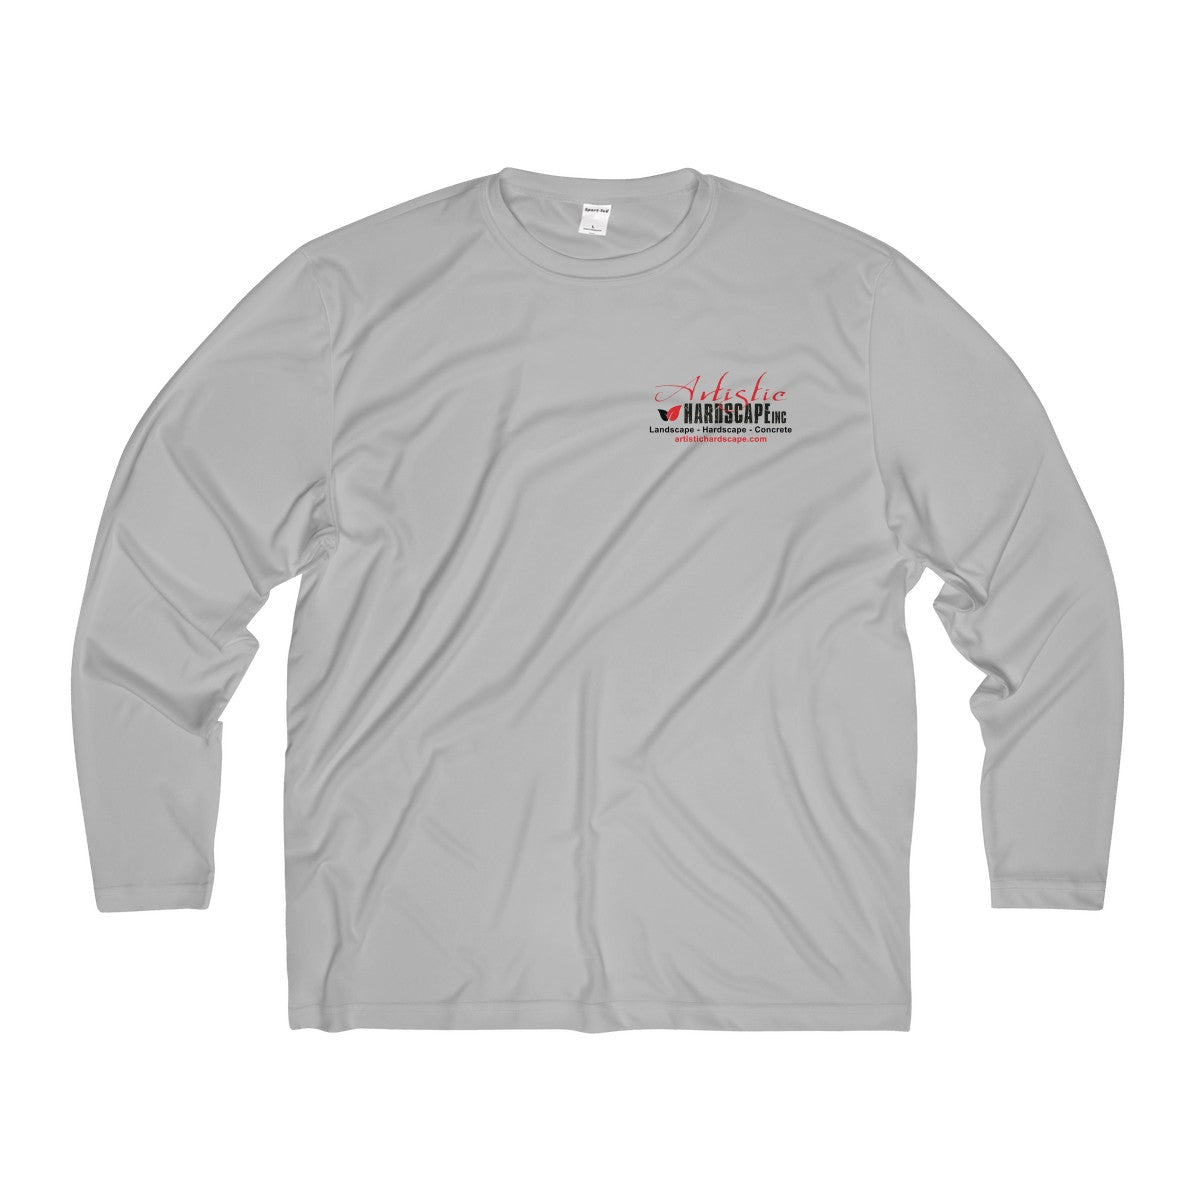 Artistic Hardscape - Men's Long Sleeve Moisture Absorbing Tee